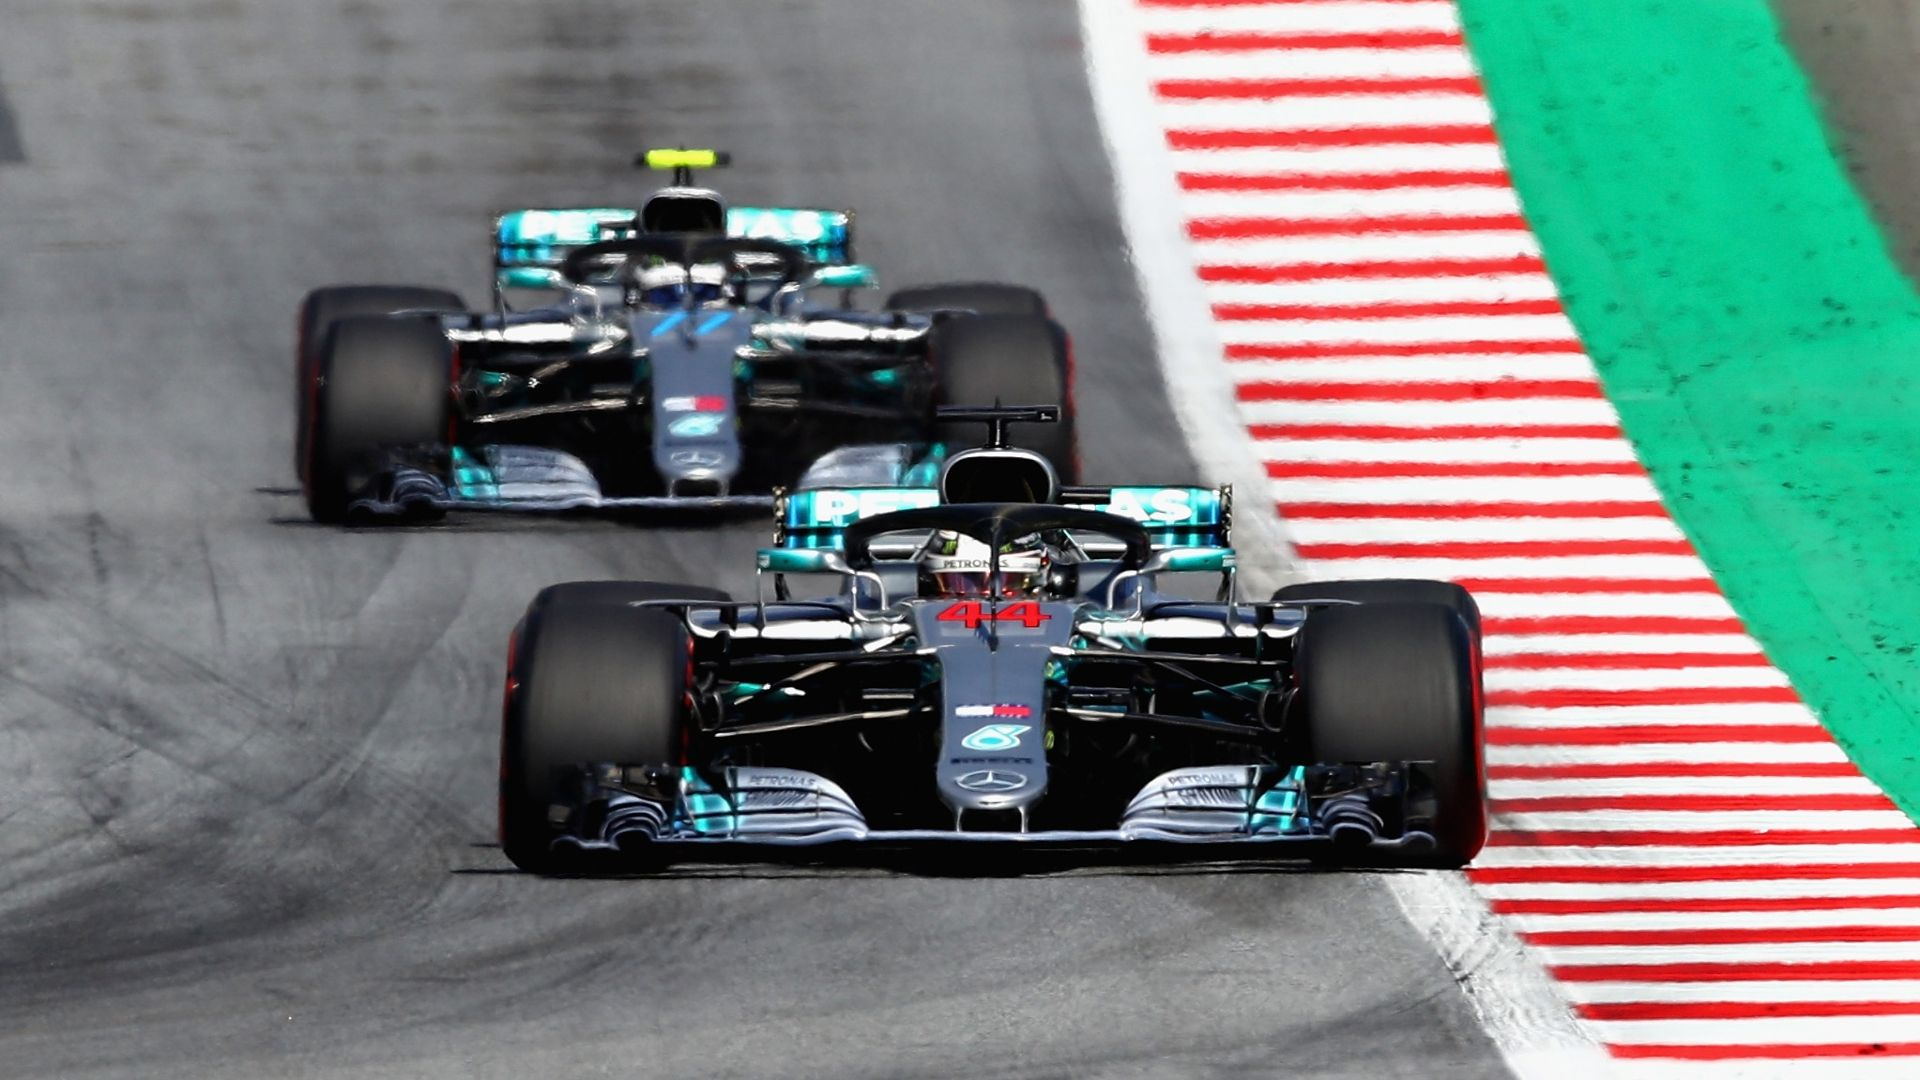 Mercedes double DNF in Austria was a shock